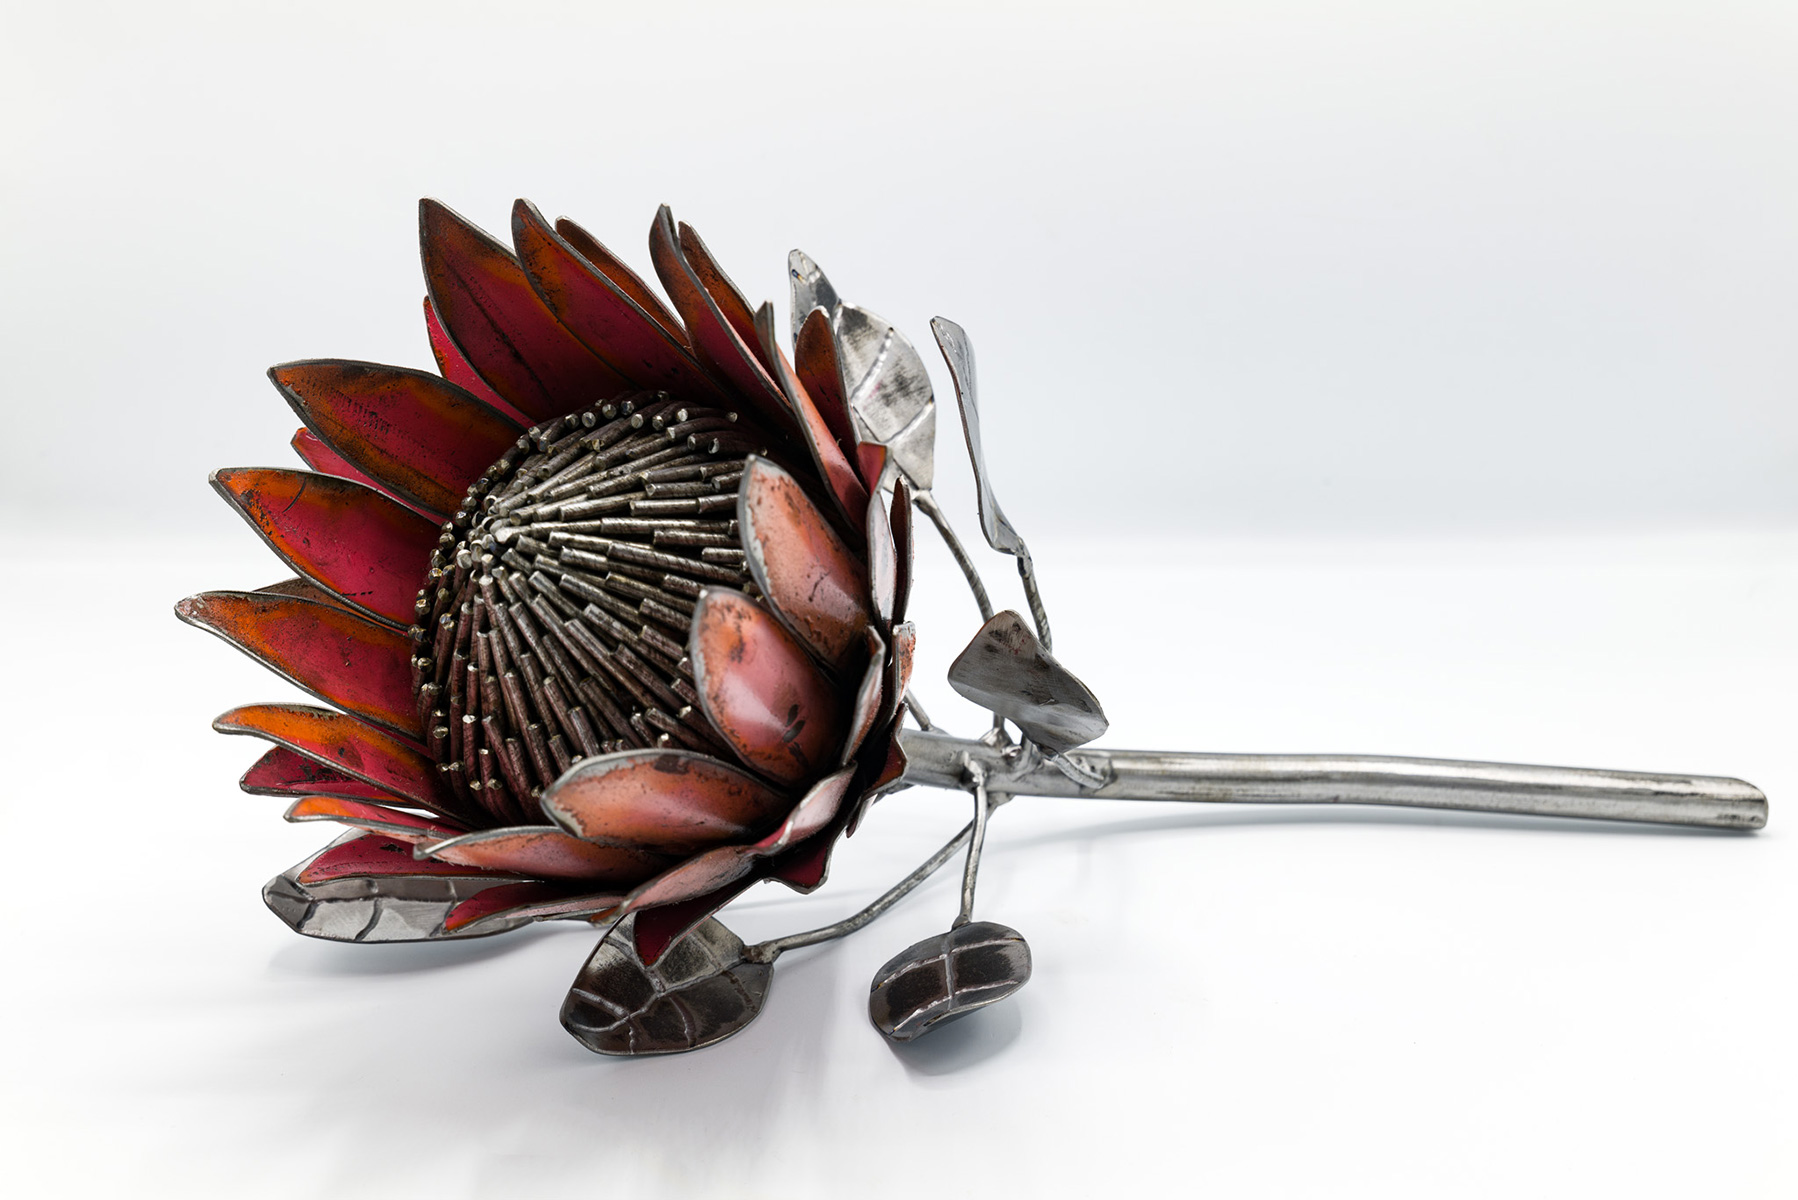 Small Sculpture Prize - Gallery - King Protea by James Horsley #sculpturebythebay #sculptures #artwork